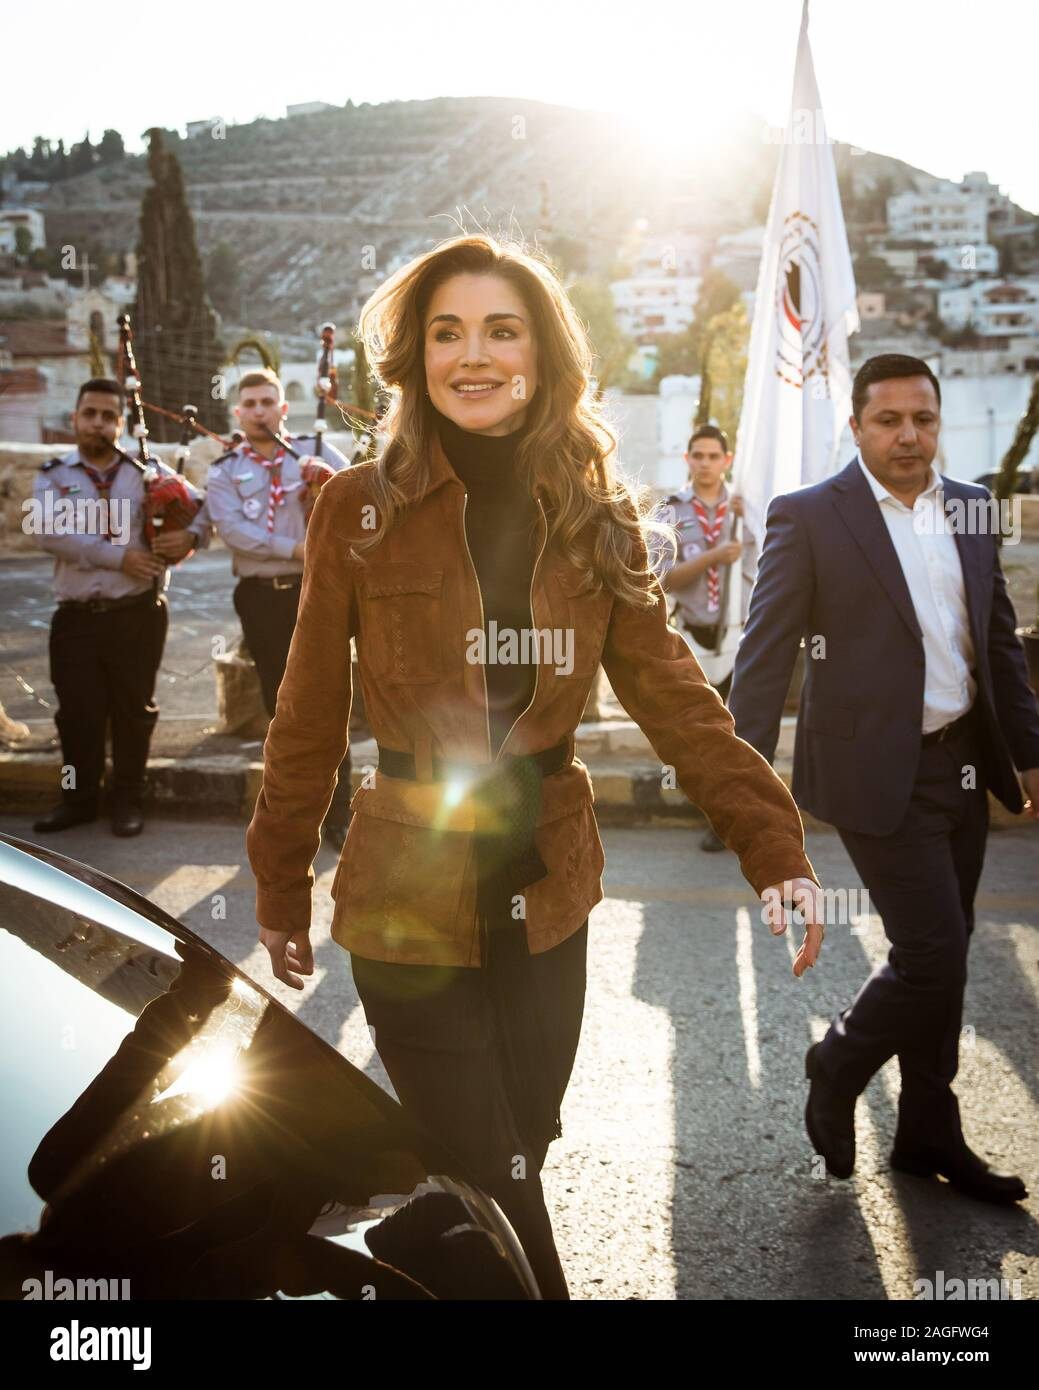 Ammam Jordan 18th Dec 2019 Her Majesty Queen Rania Al Abdullah Joined The Residents Of Fuheis In Ammam At Their Town S Christmas Market Where She Spoke With Members Of The Local Community